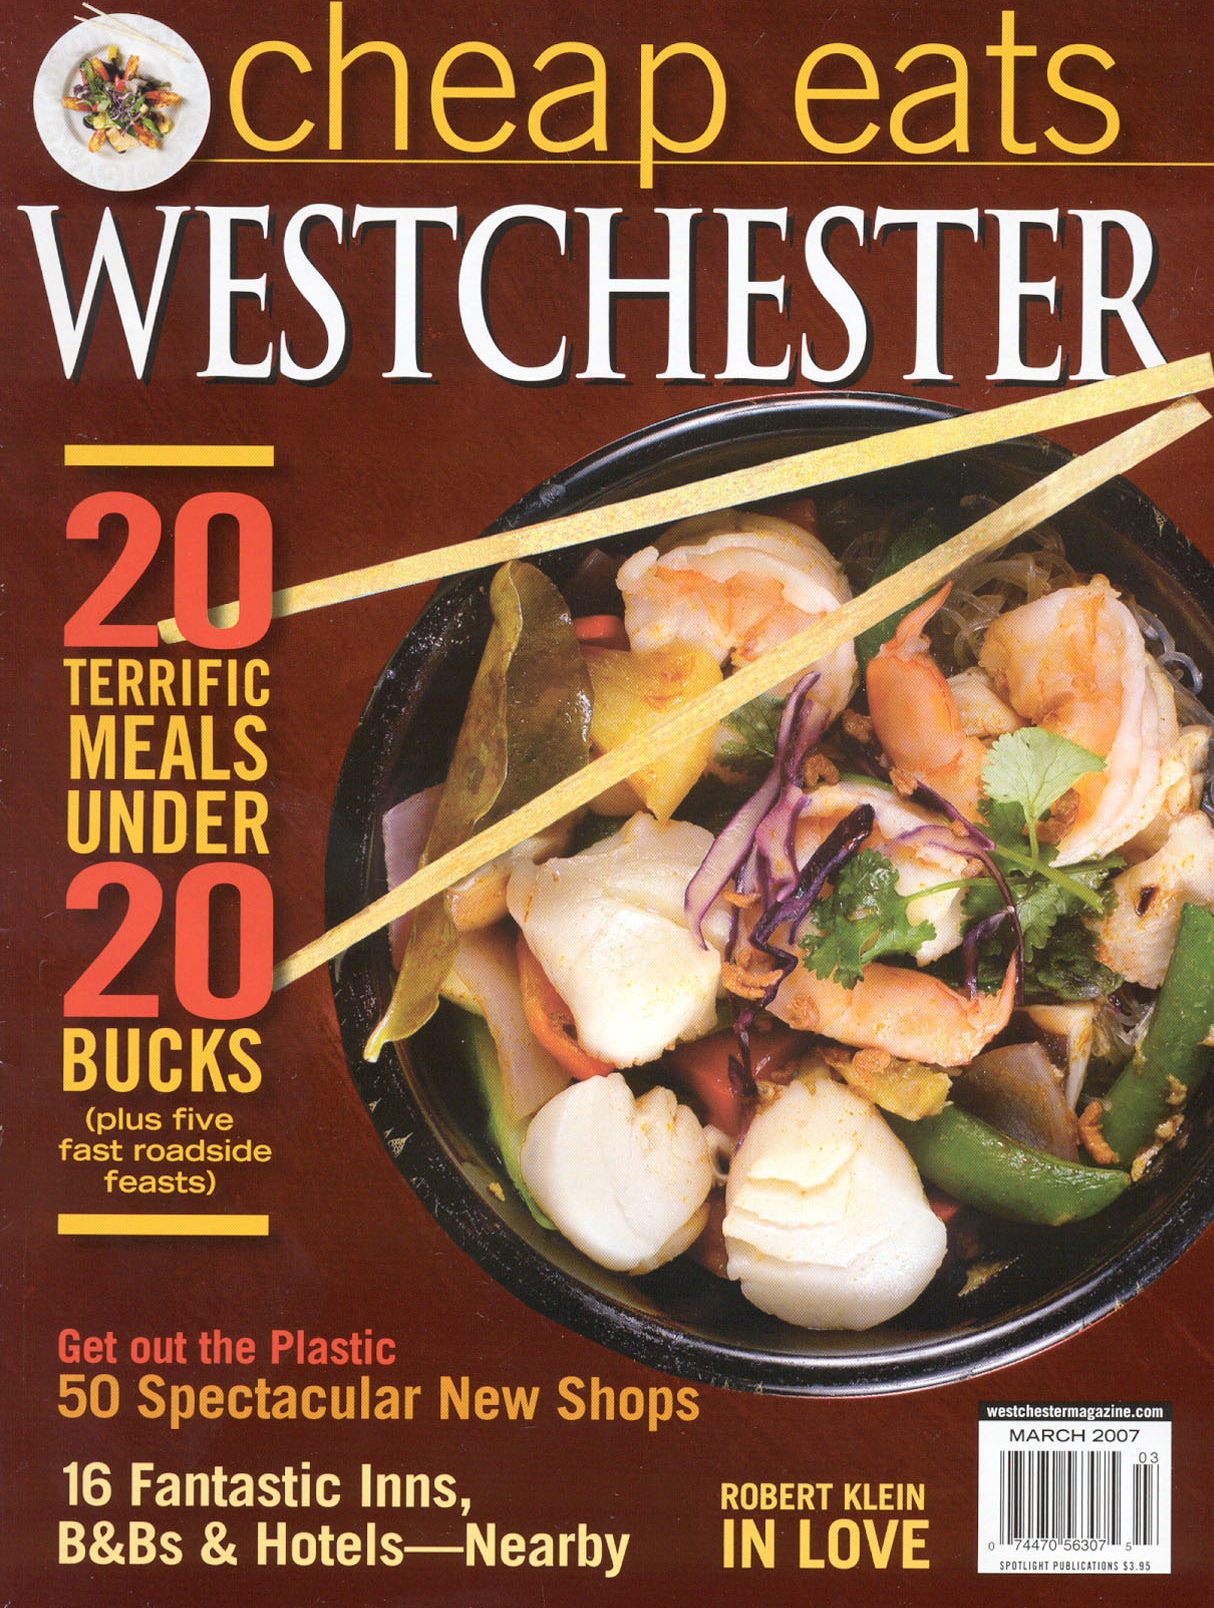 Westchester Magazine – 4 Questions for Lisi Harrison